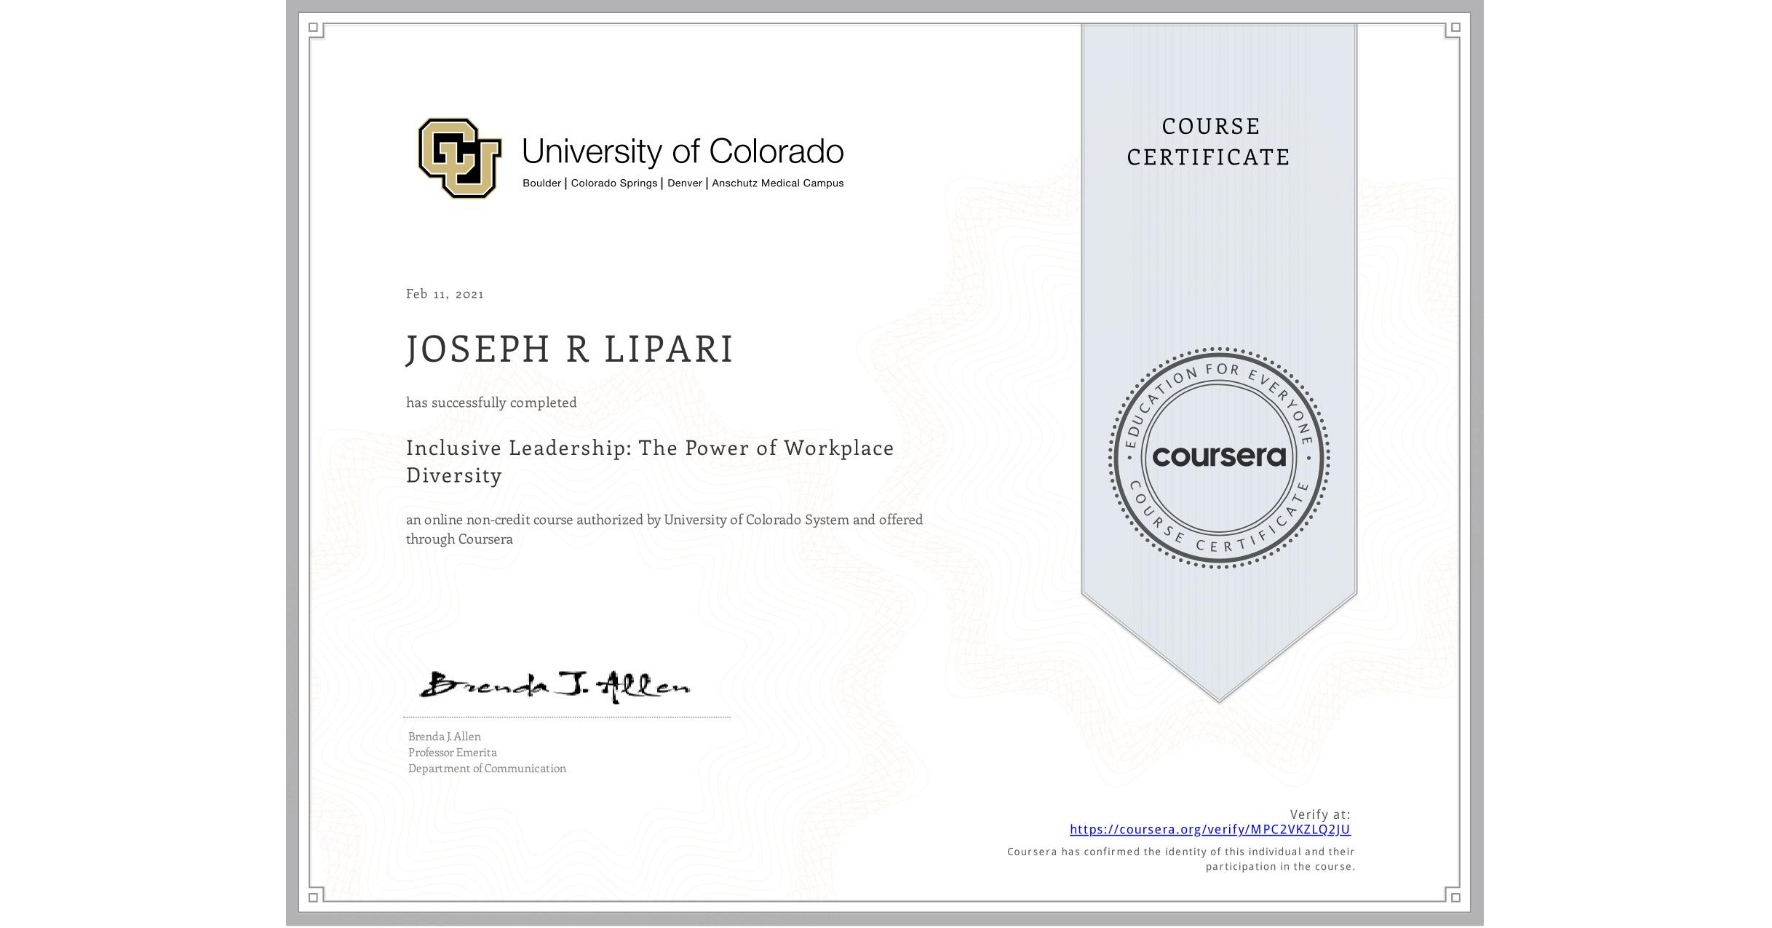 View certificate for JOSEPH R  LIPARI, Inclusive Leadership: The Power of Workplace Diversity, an online non-credit course authorized by University of Colorado System and offered through Coursera